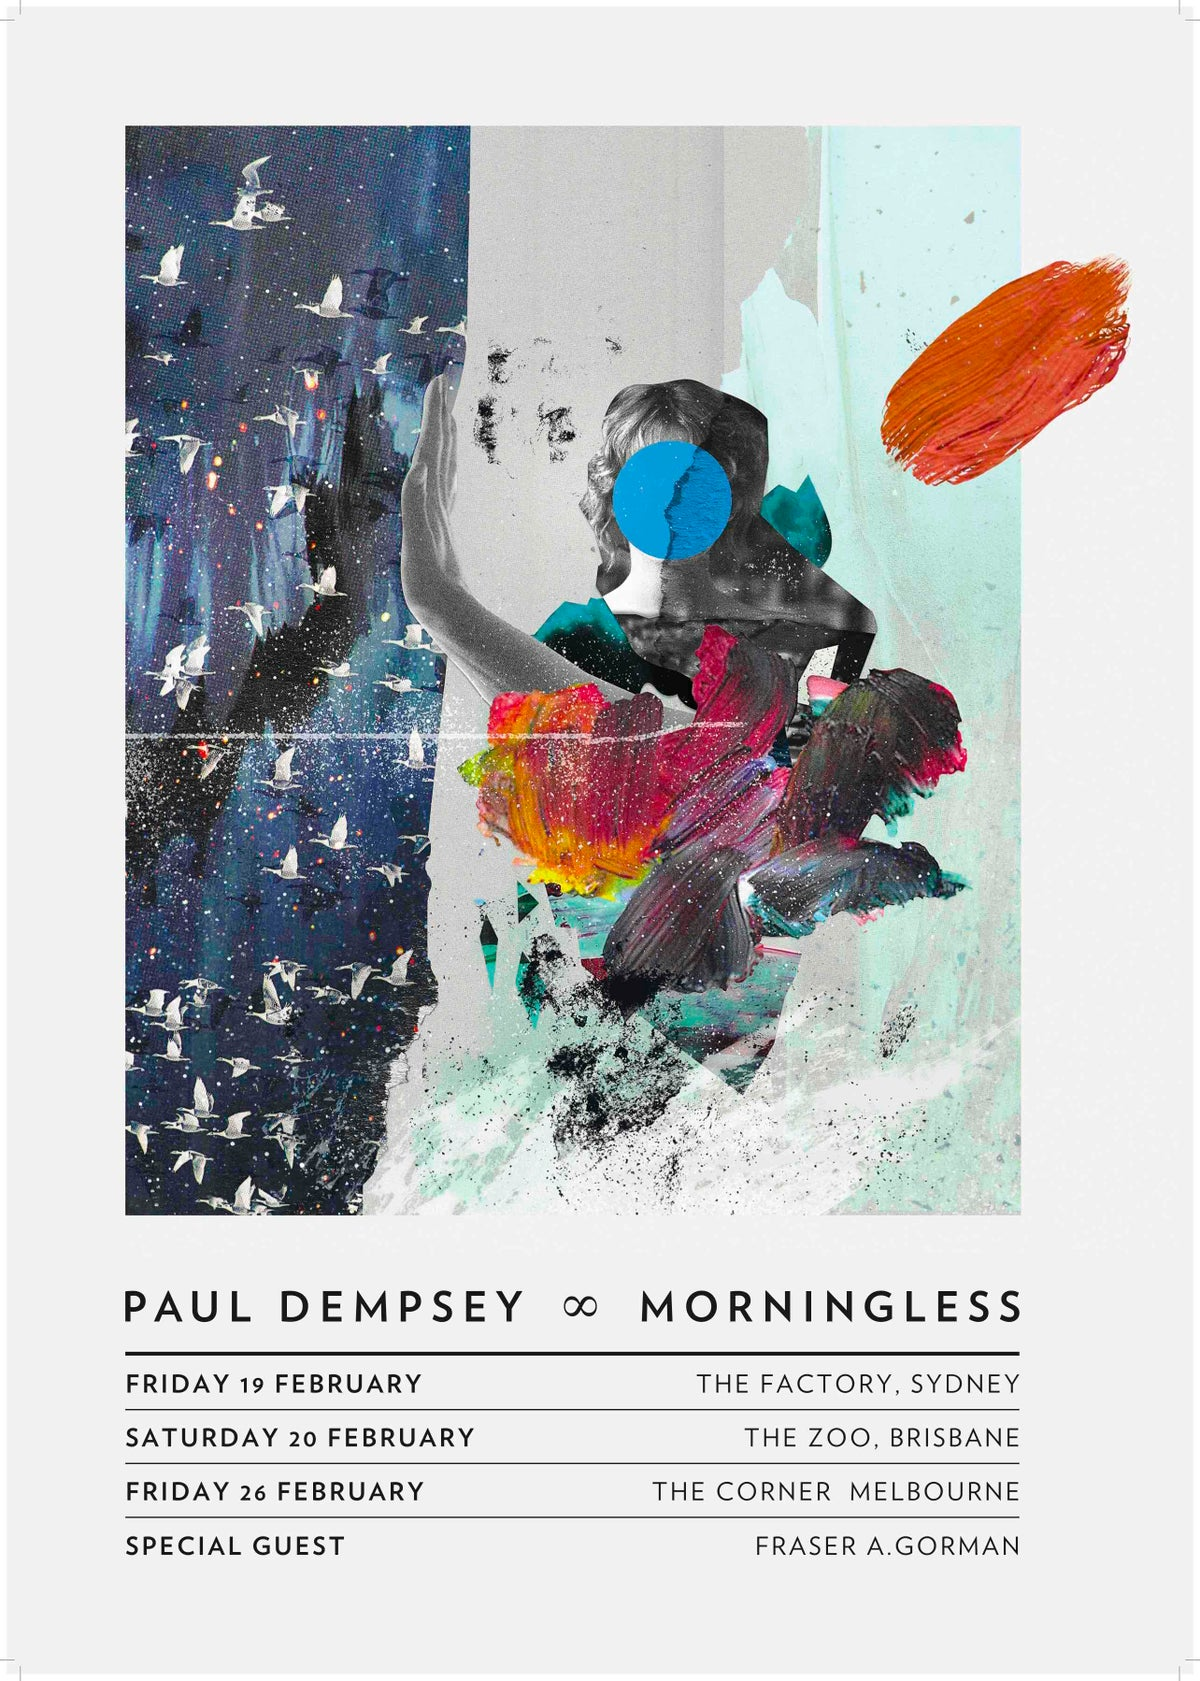 Image of Paul Dempsey 'Morningless' Limited Edition Tour Poster